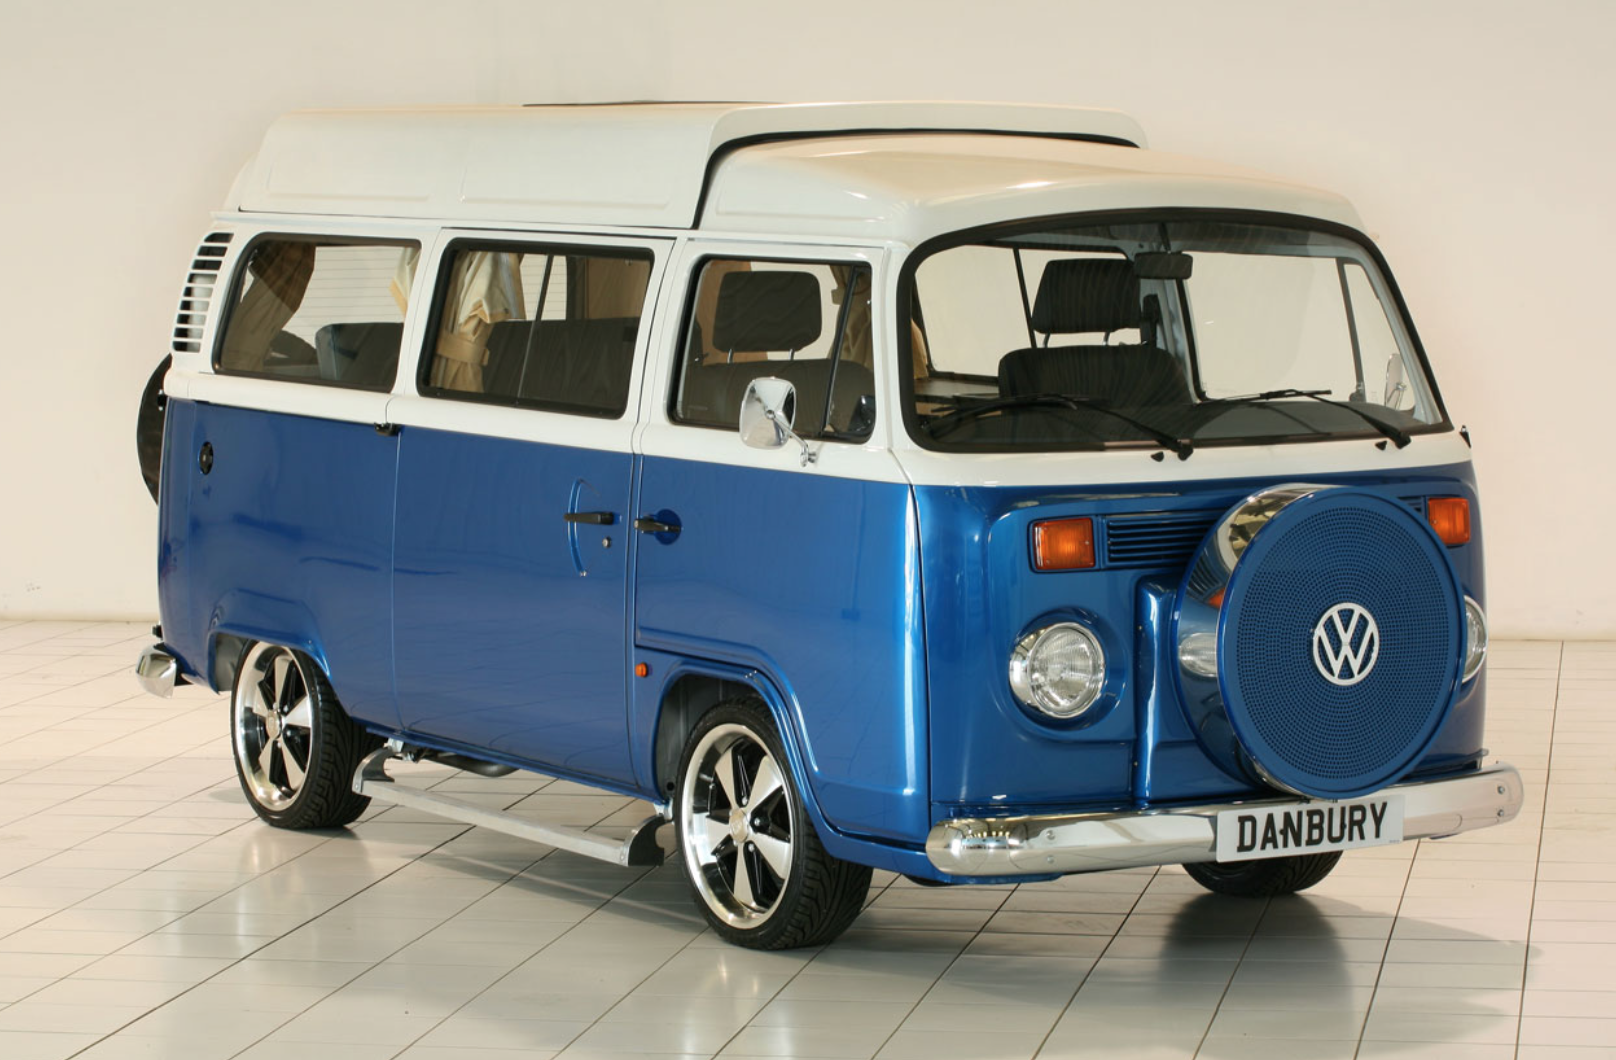 Best van to live in - VW Bus